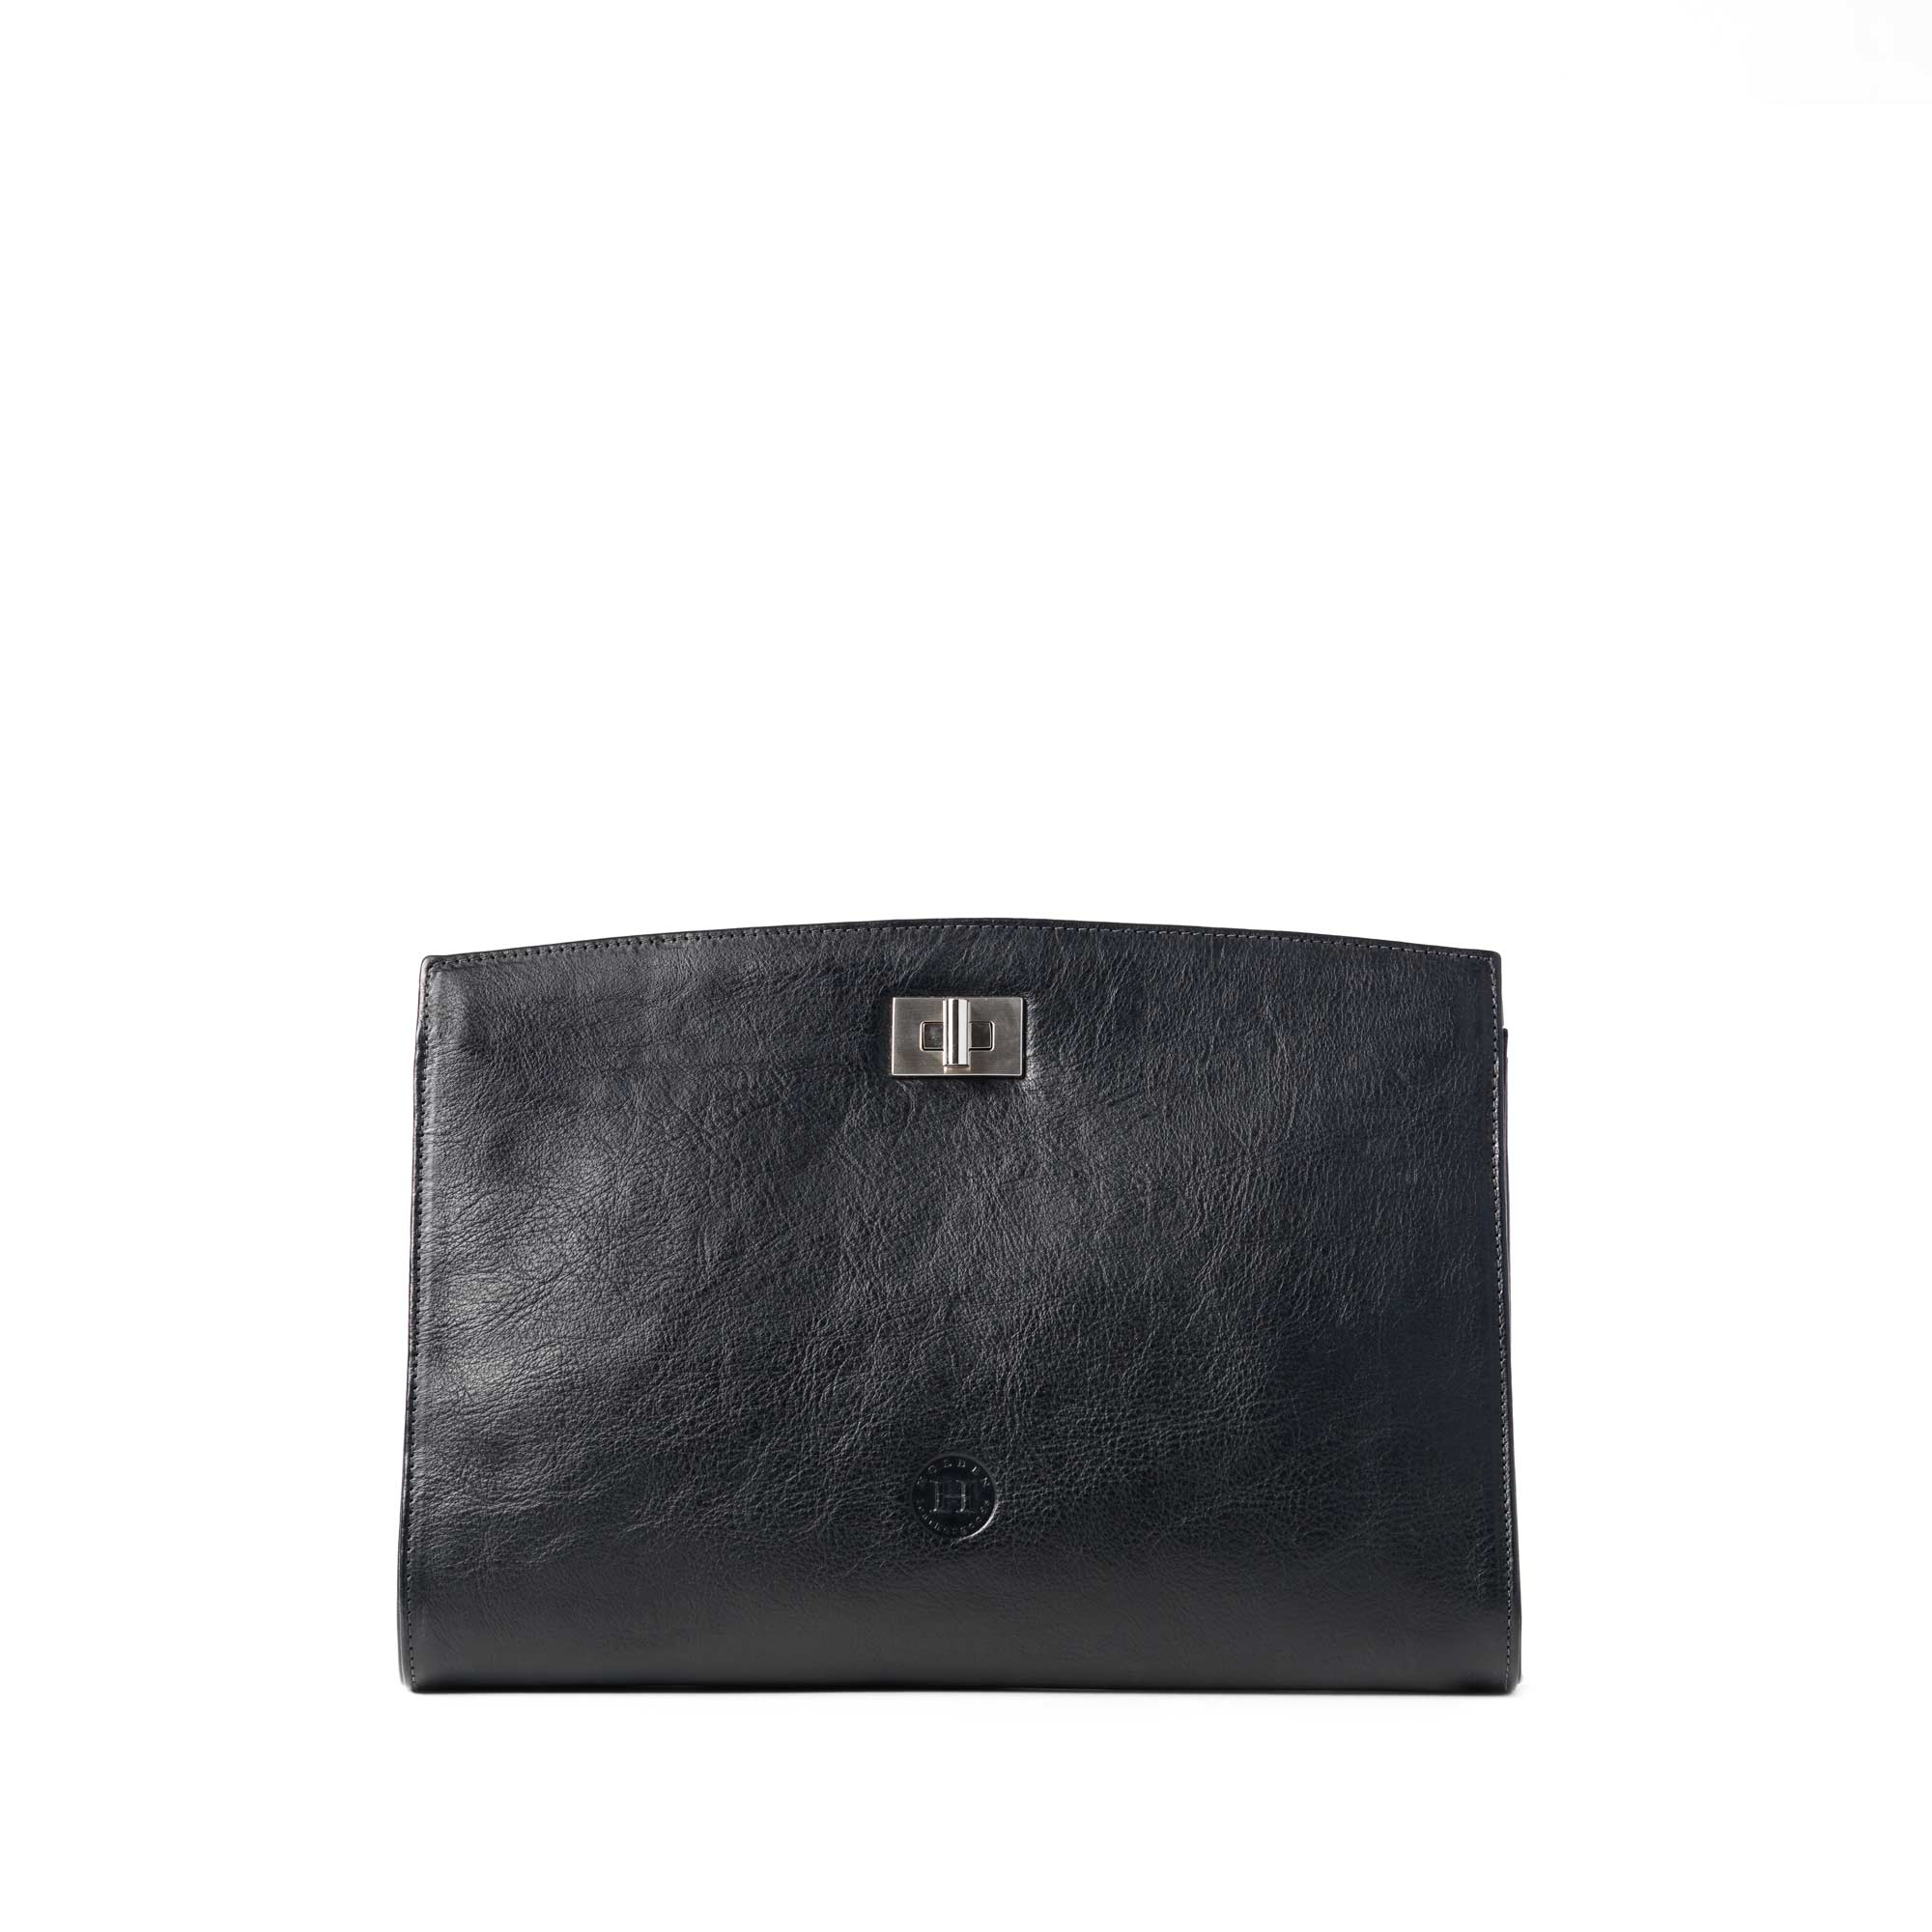 Our Emer Black leather clutch bag